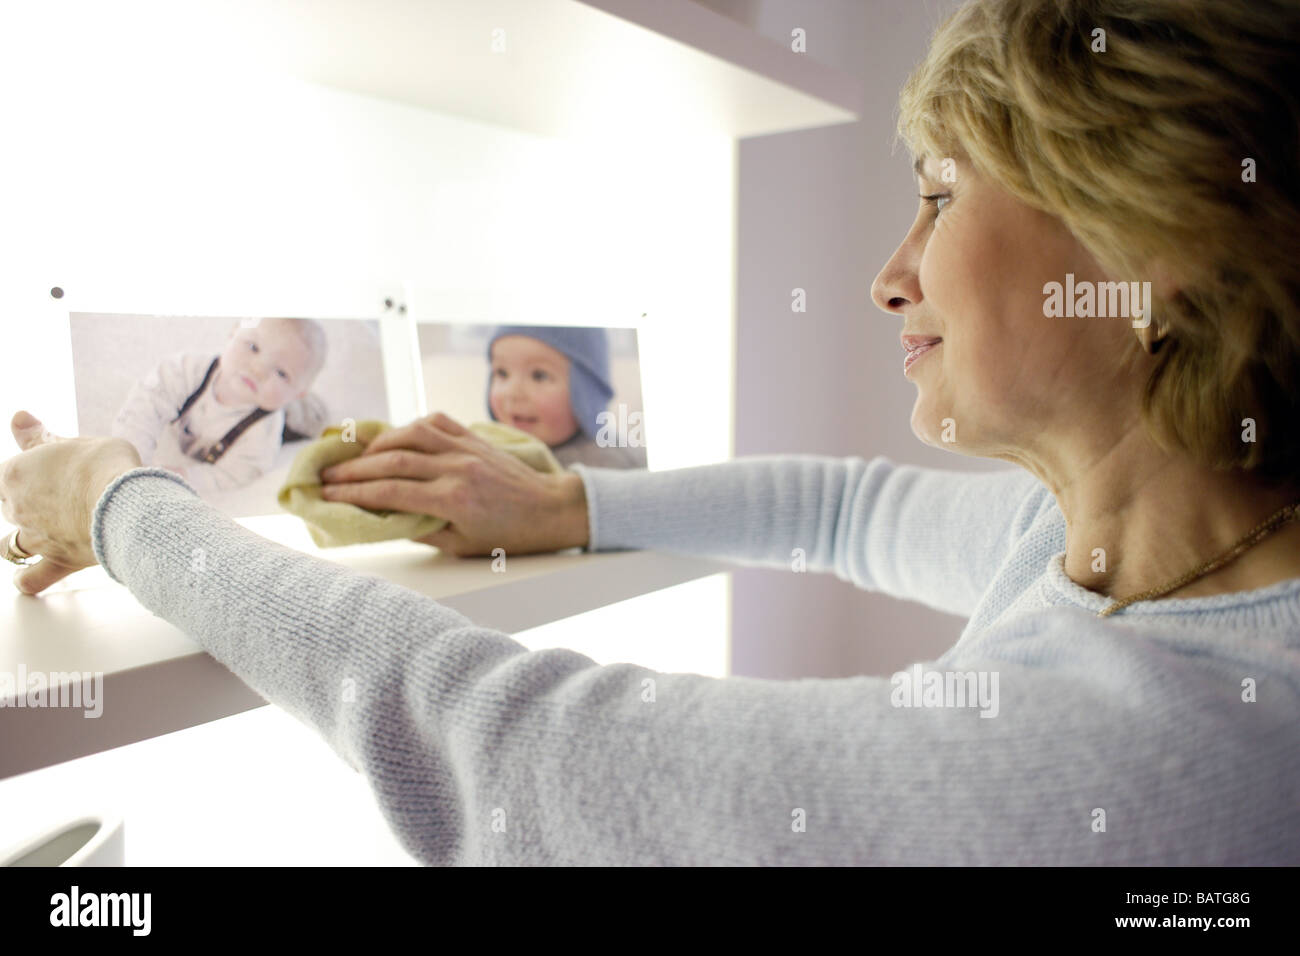 Woman dusting family photographs. - Stock Image